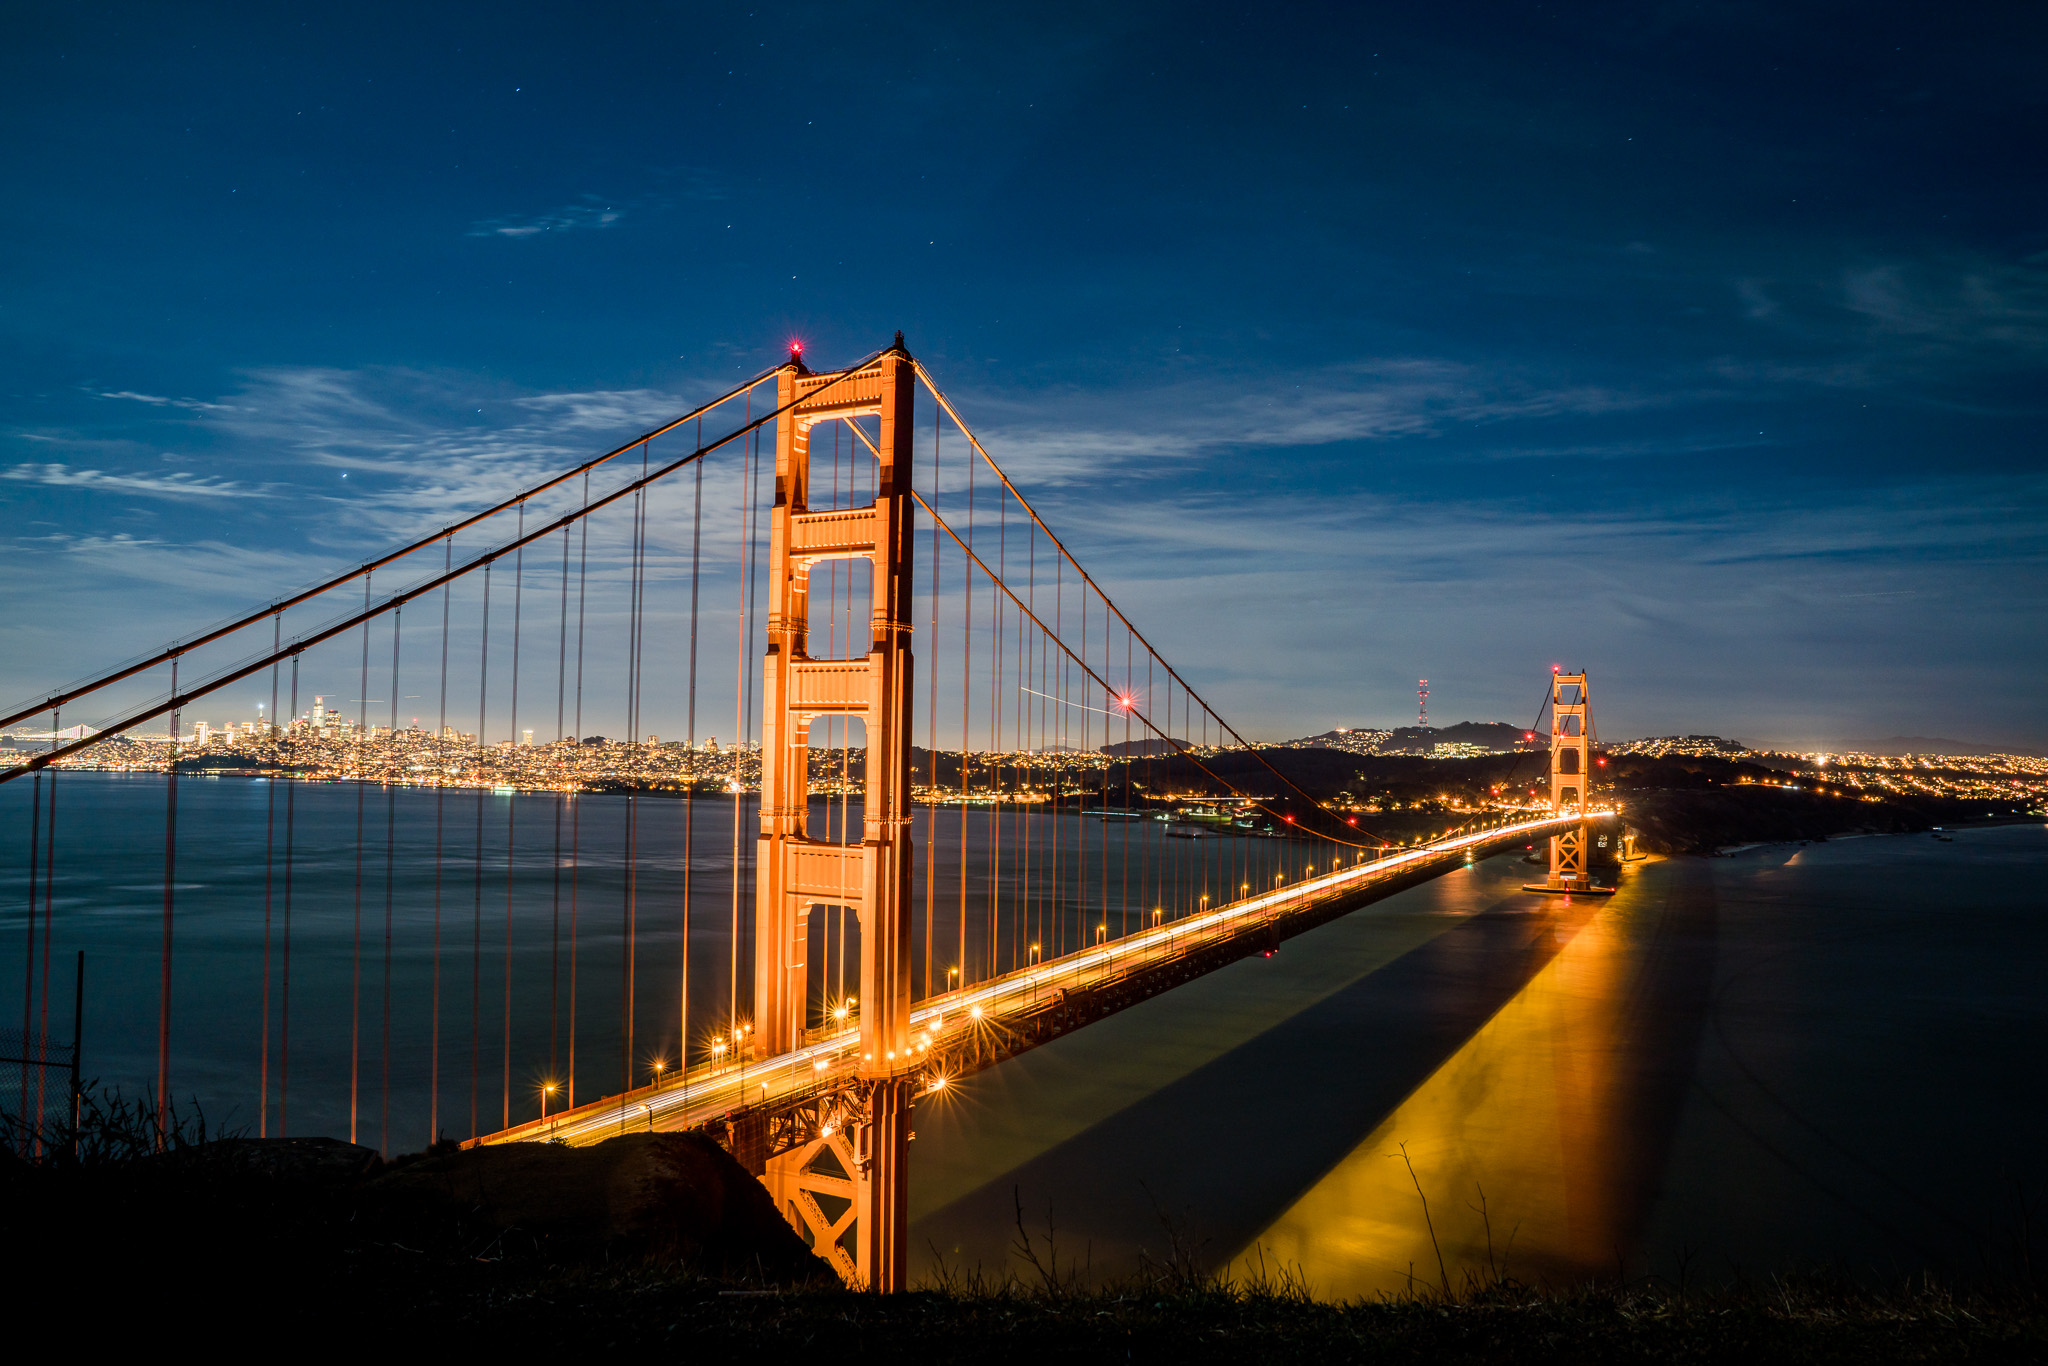 Hd Wallpapers For Android Free Download Golden Gate Bridge 183 Free Stock Photo